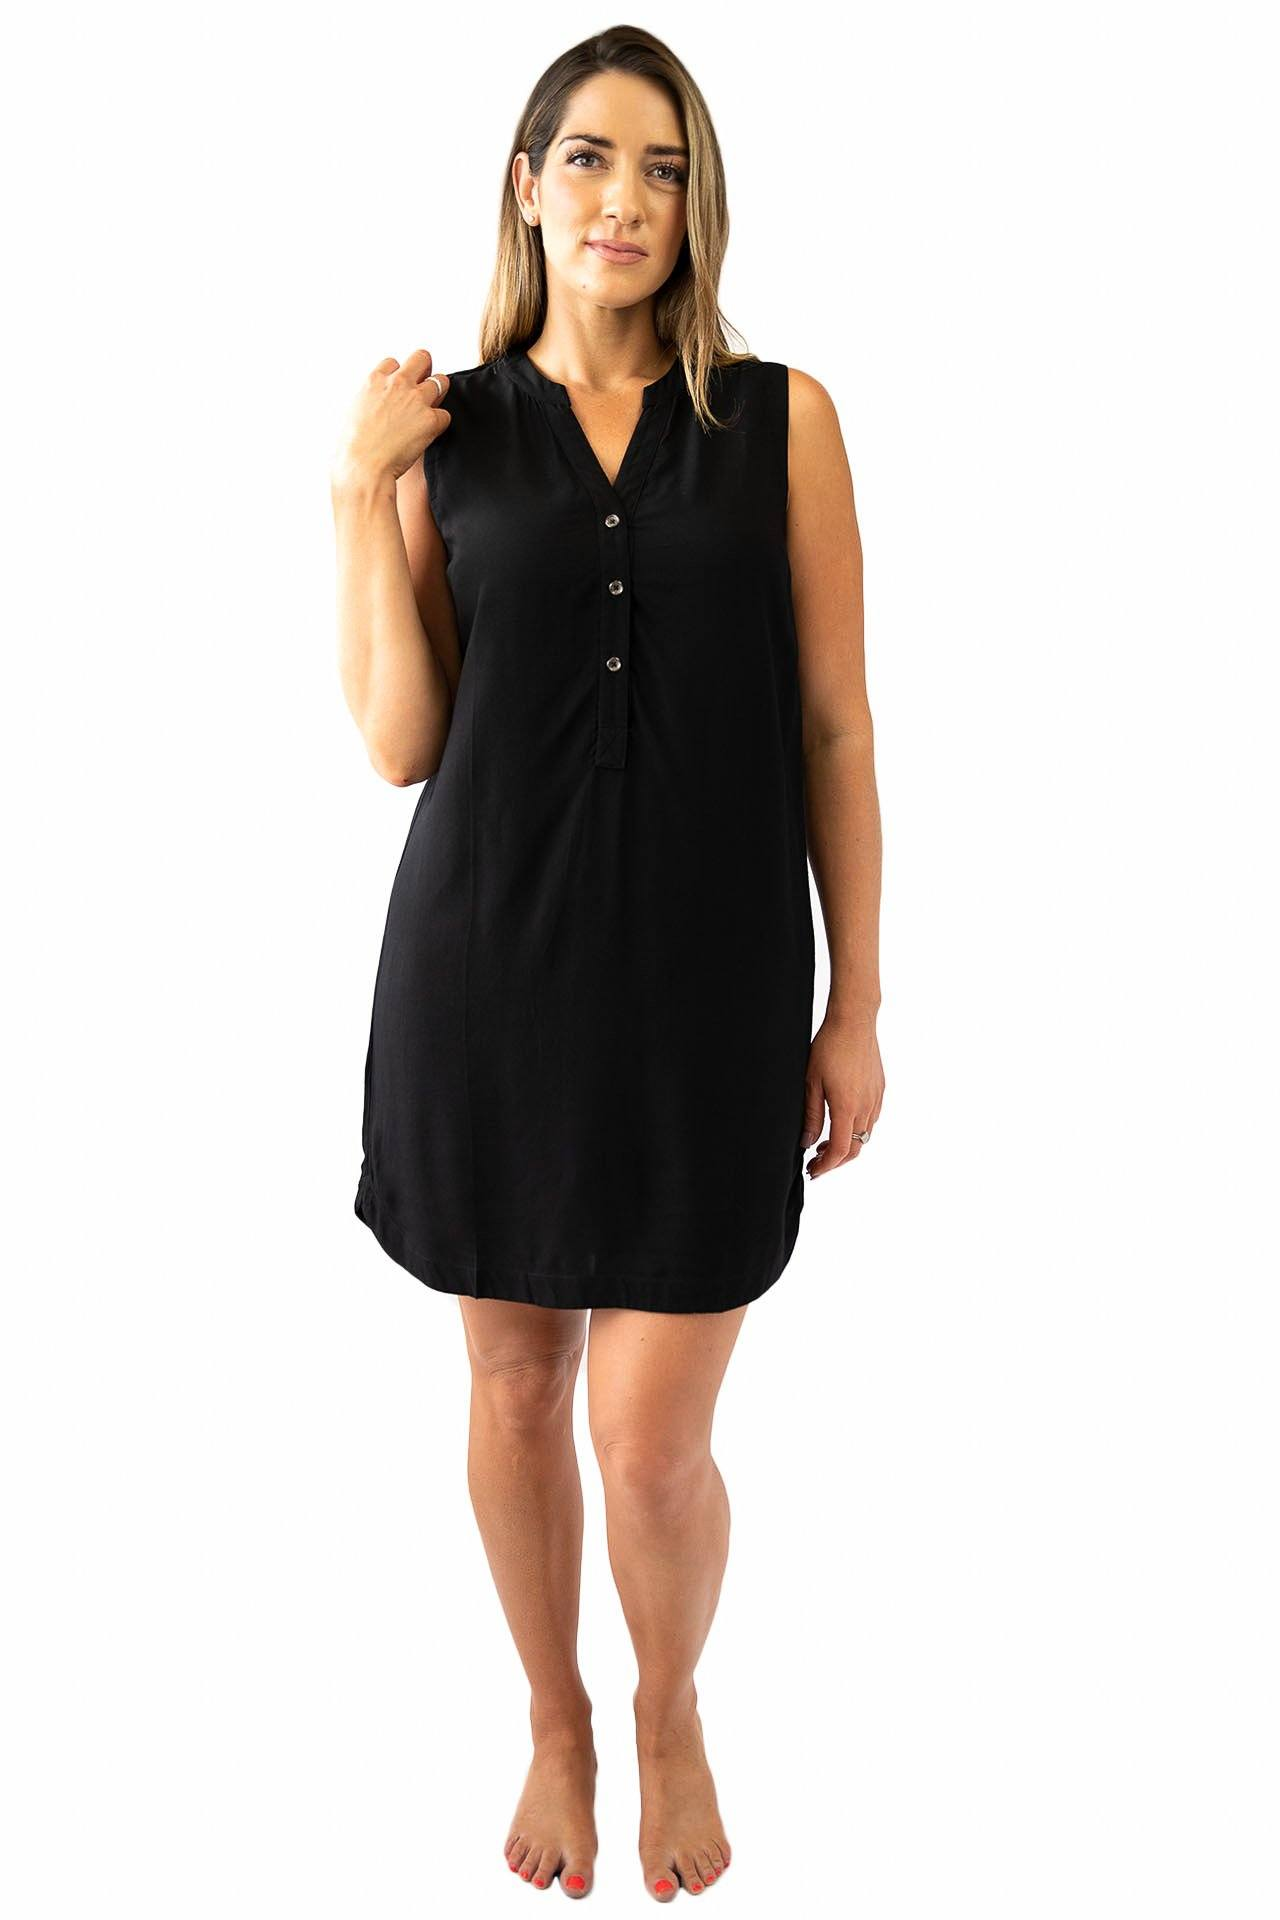 Sally Sleeveless Shirt Dress DRESS LOVE LILY XS BLACK